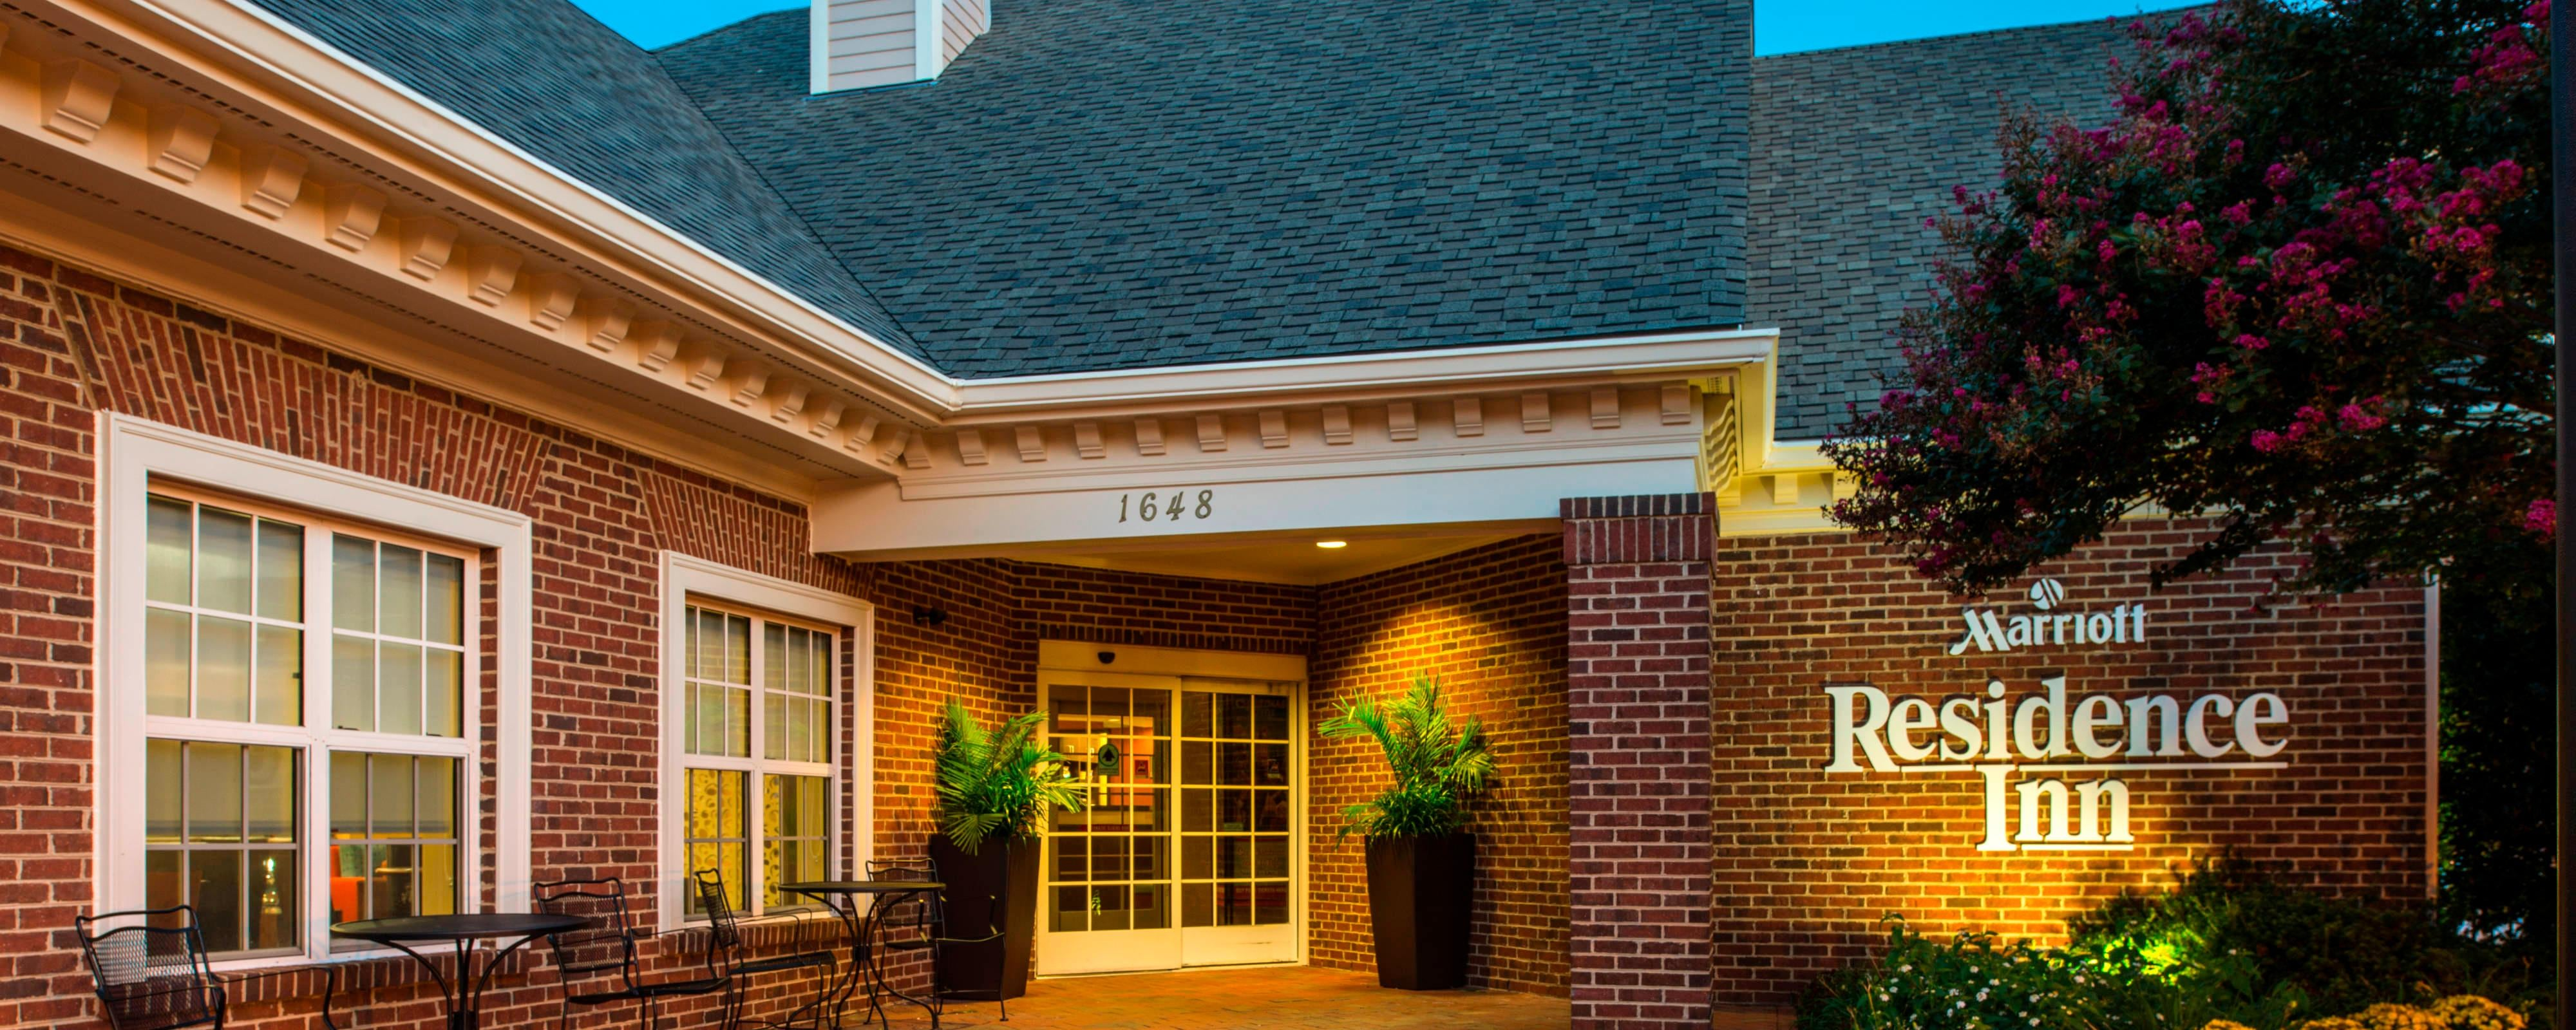 Williamsburg, Virginia Hotel near William and Mary | Residence Inn ...